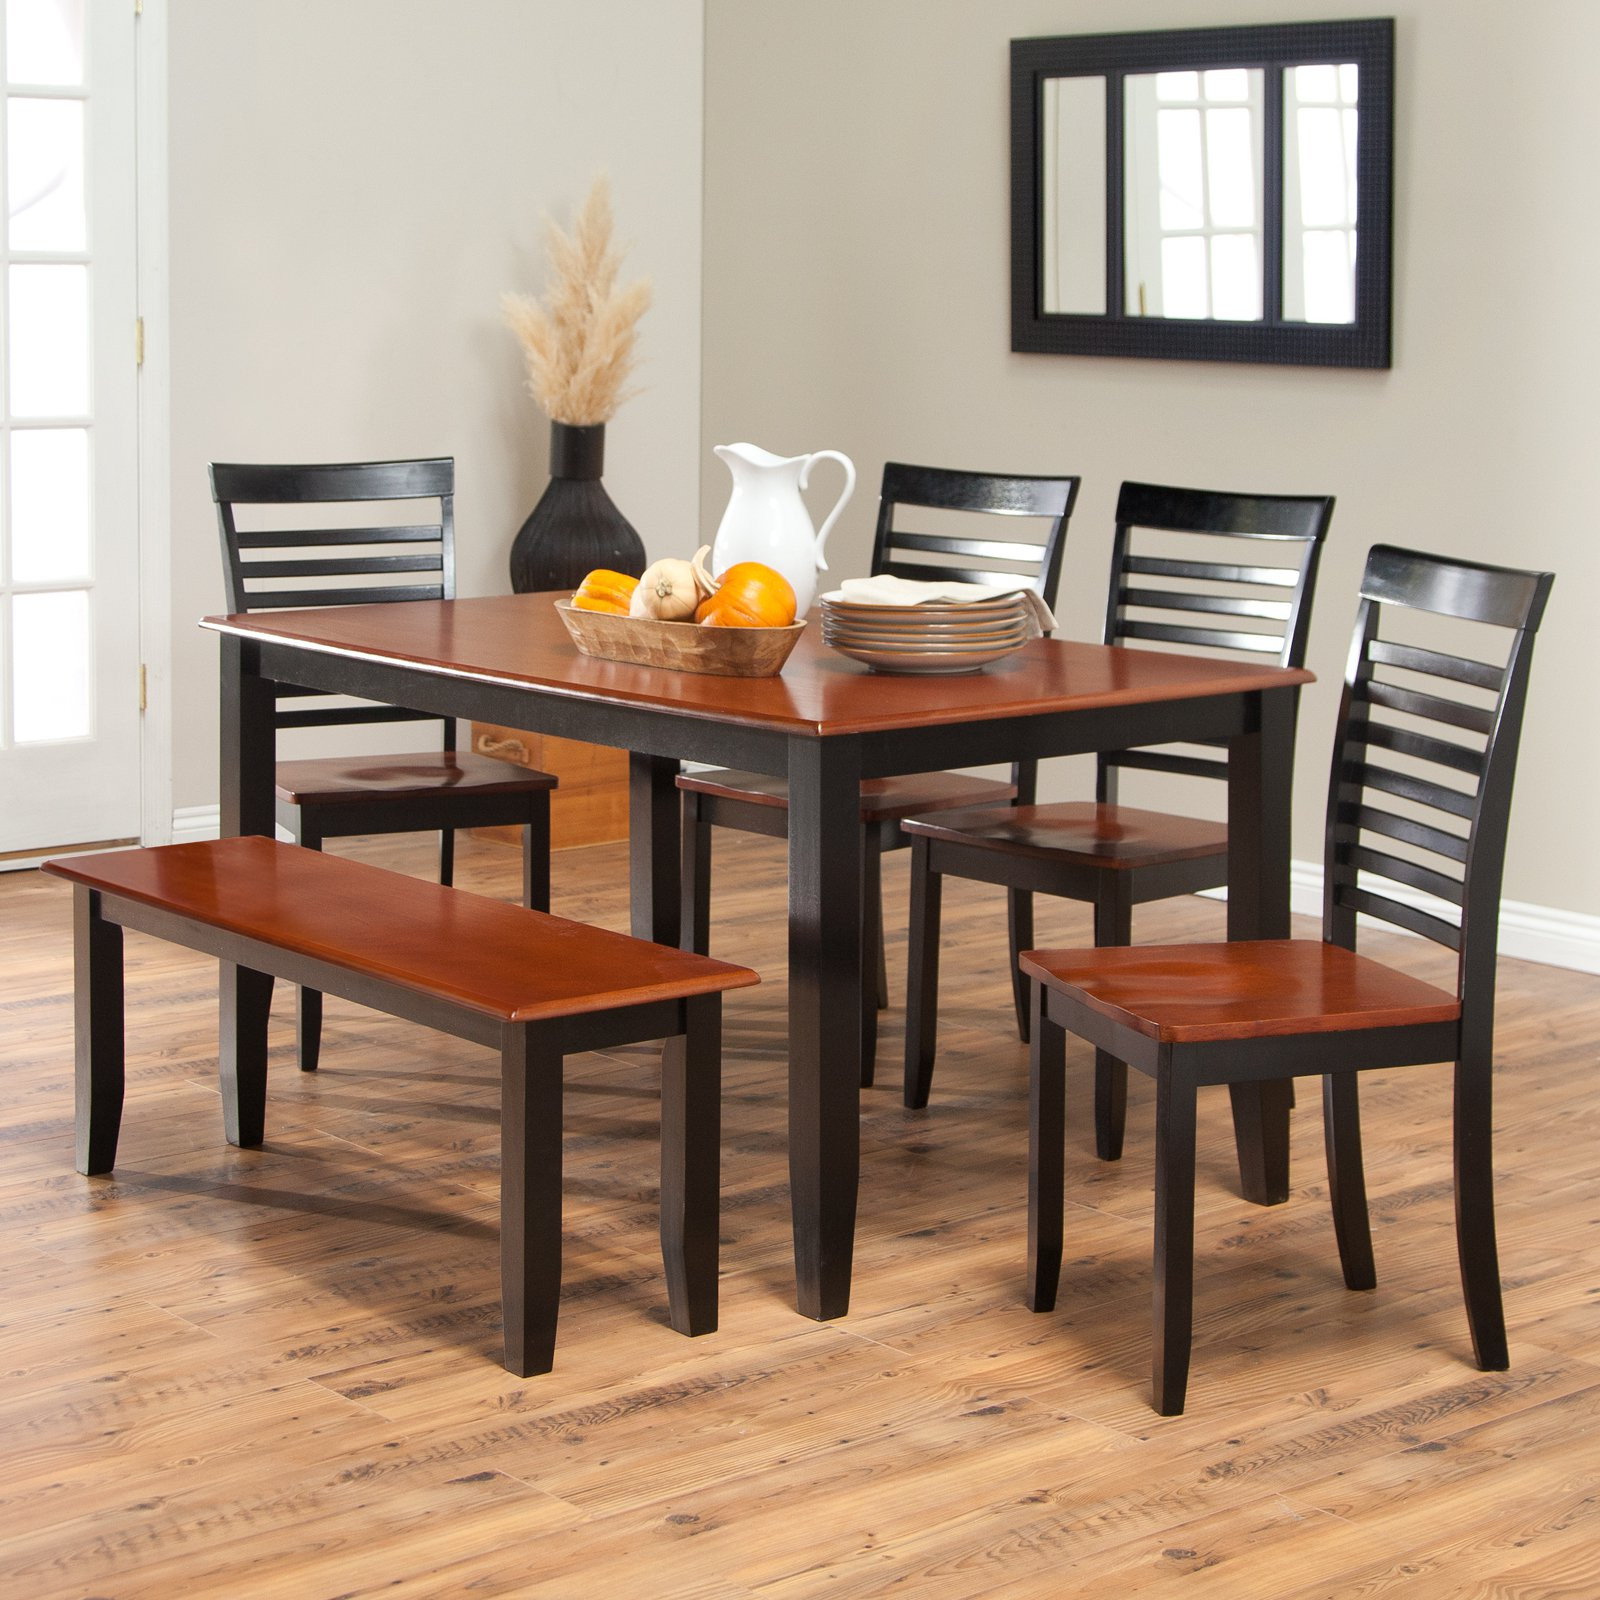 Attirant Boraam Bloomington Dining Table Set   Black/Cherry